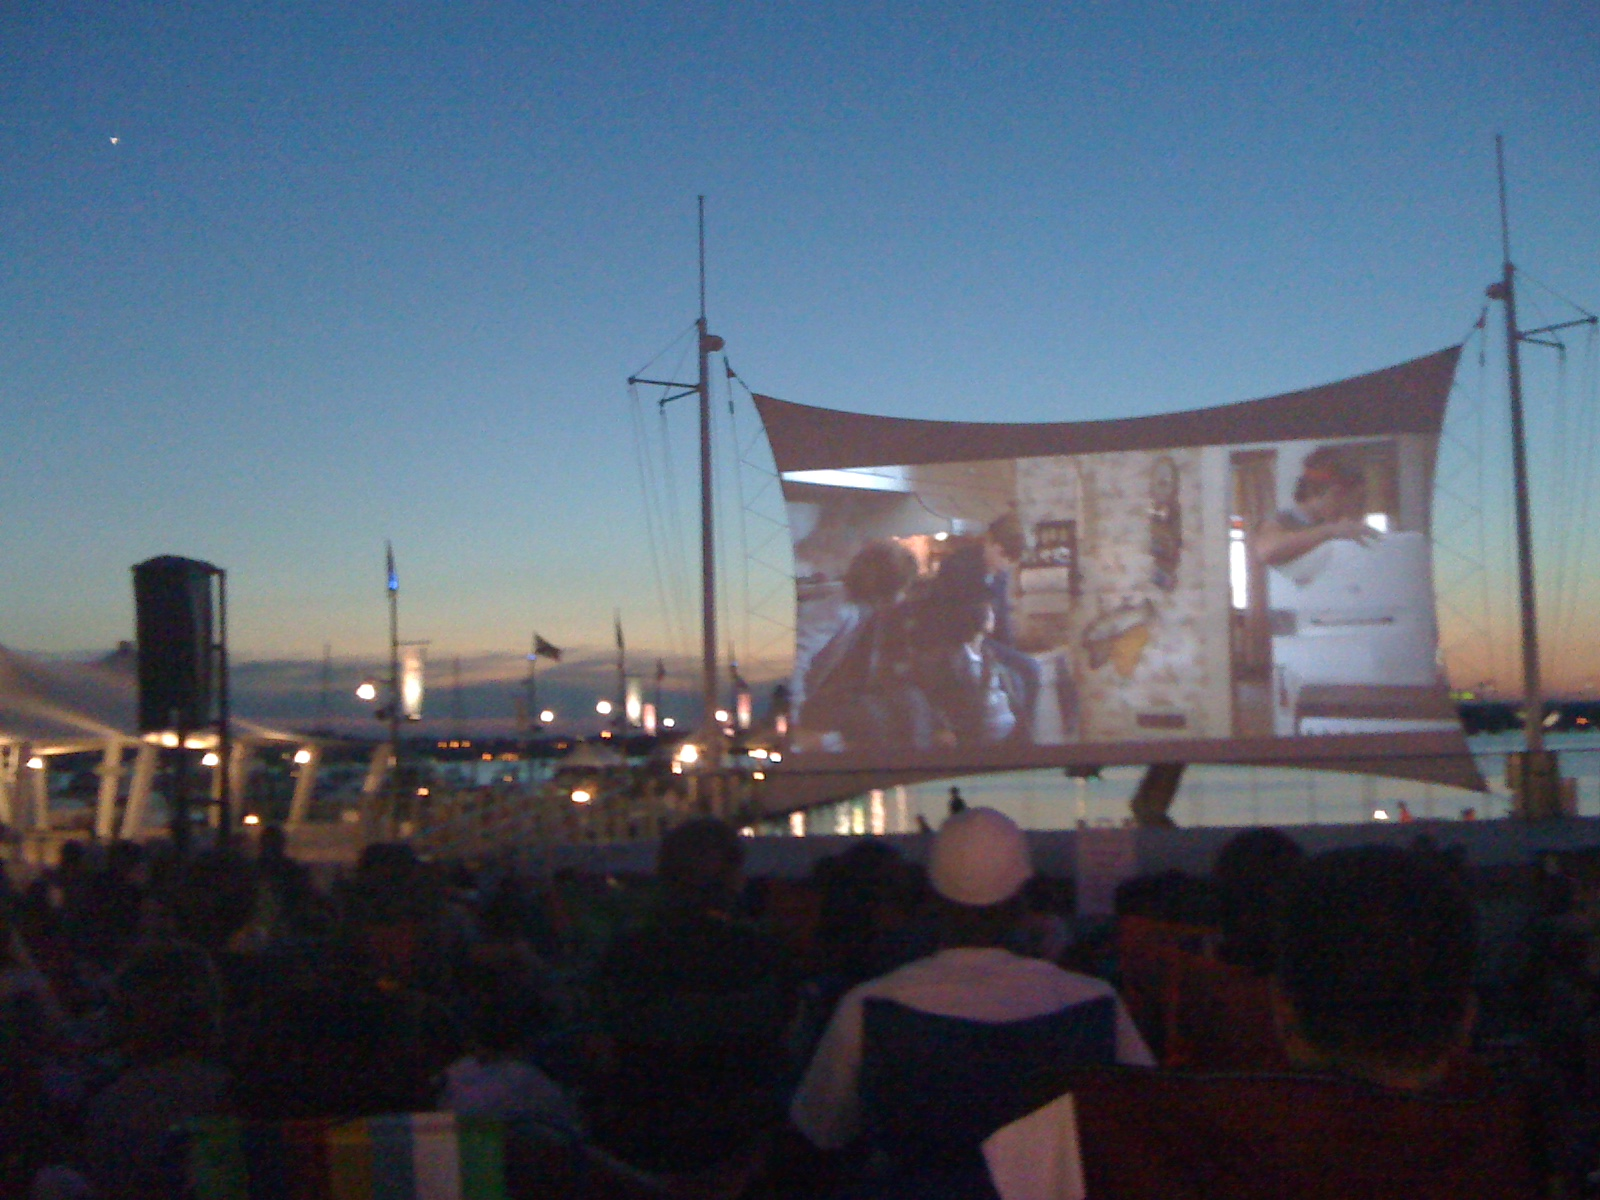 Movies on the Potomac will show free films on Sundays at National Harbor. (Photo: Campbell's Soup Blog)